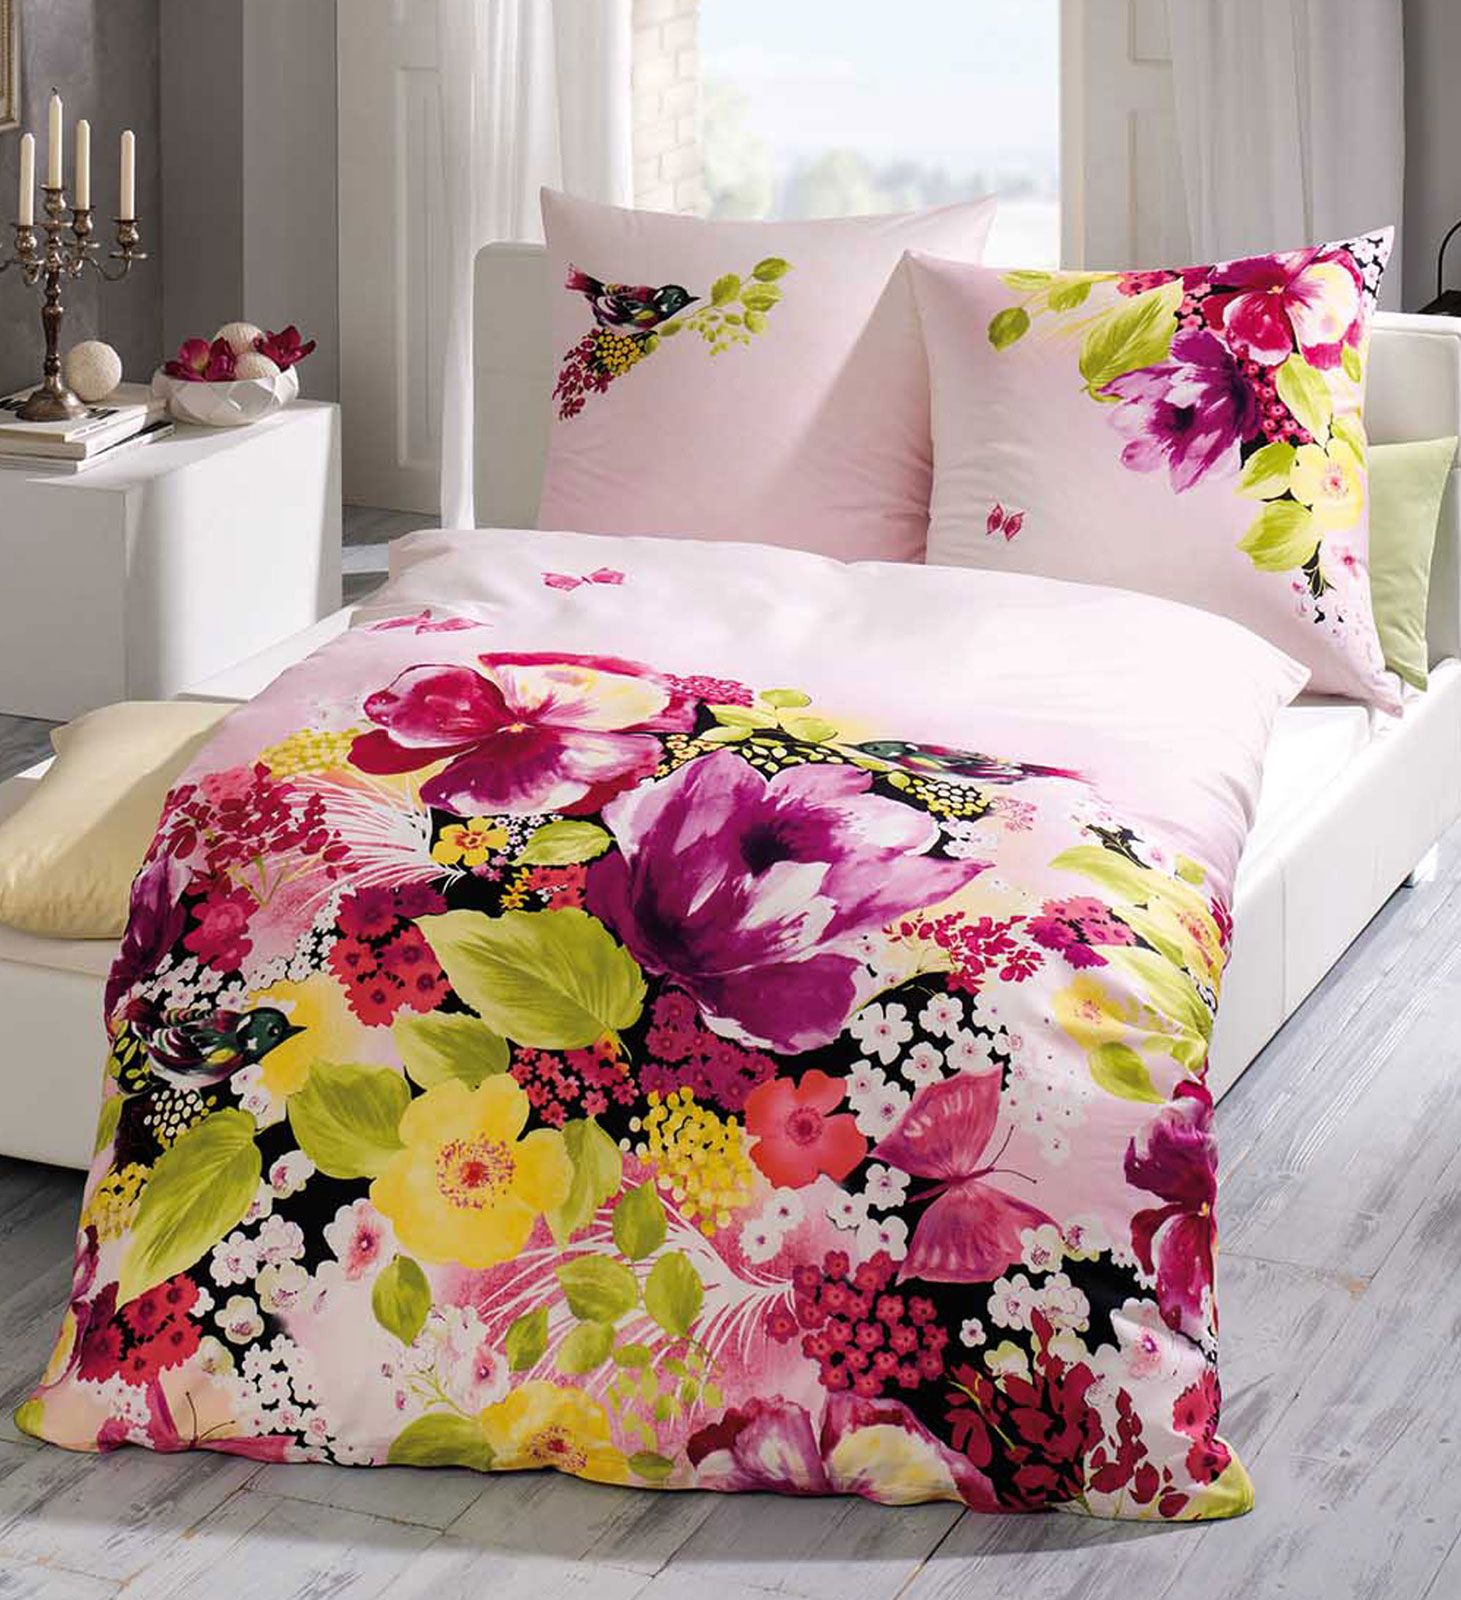 kaeppel mako satin bettw sche 135x200 533 615 prestige rosa blumen ebay. Black Bedroom Furniture Sets. Home Design Ideas